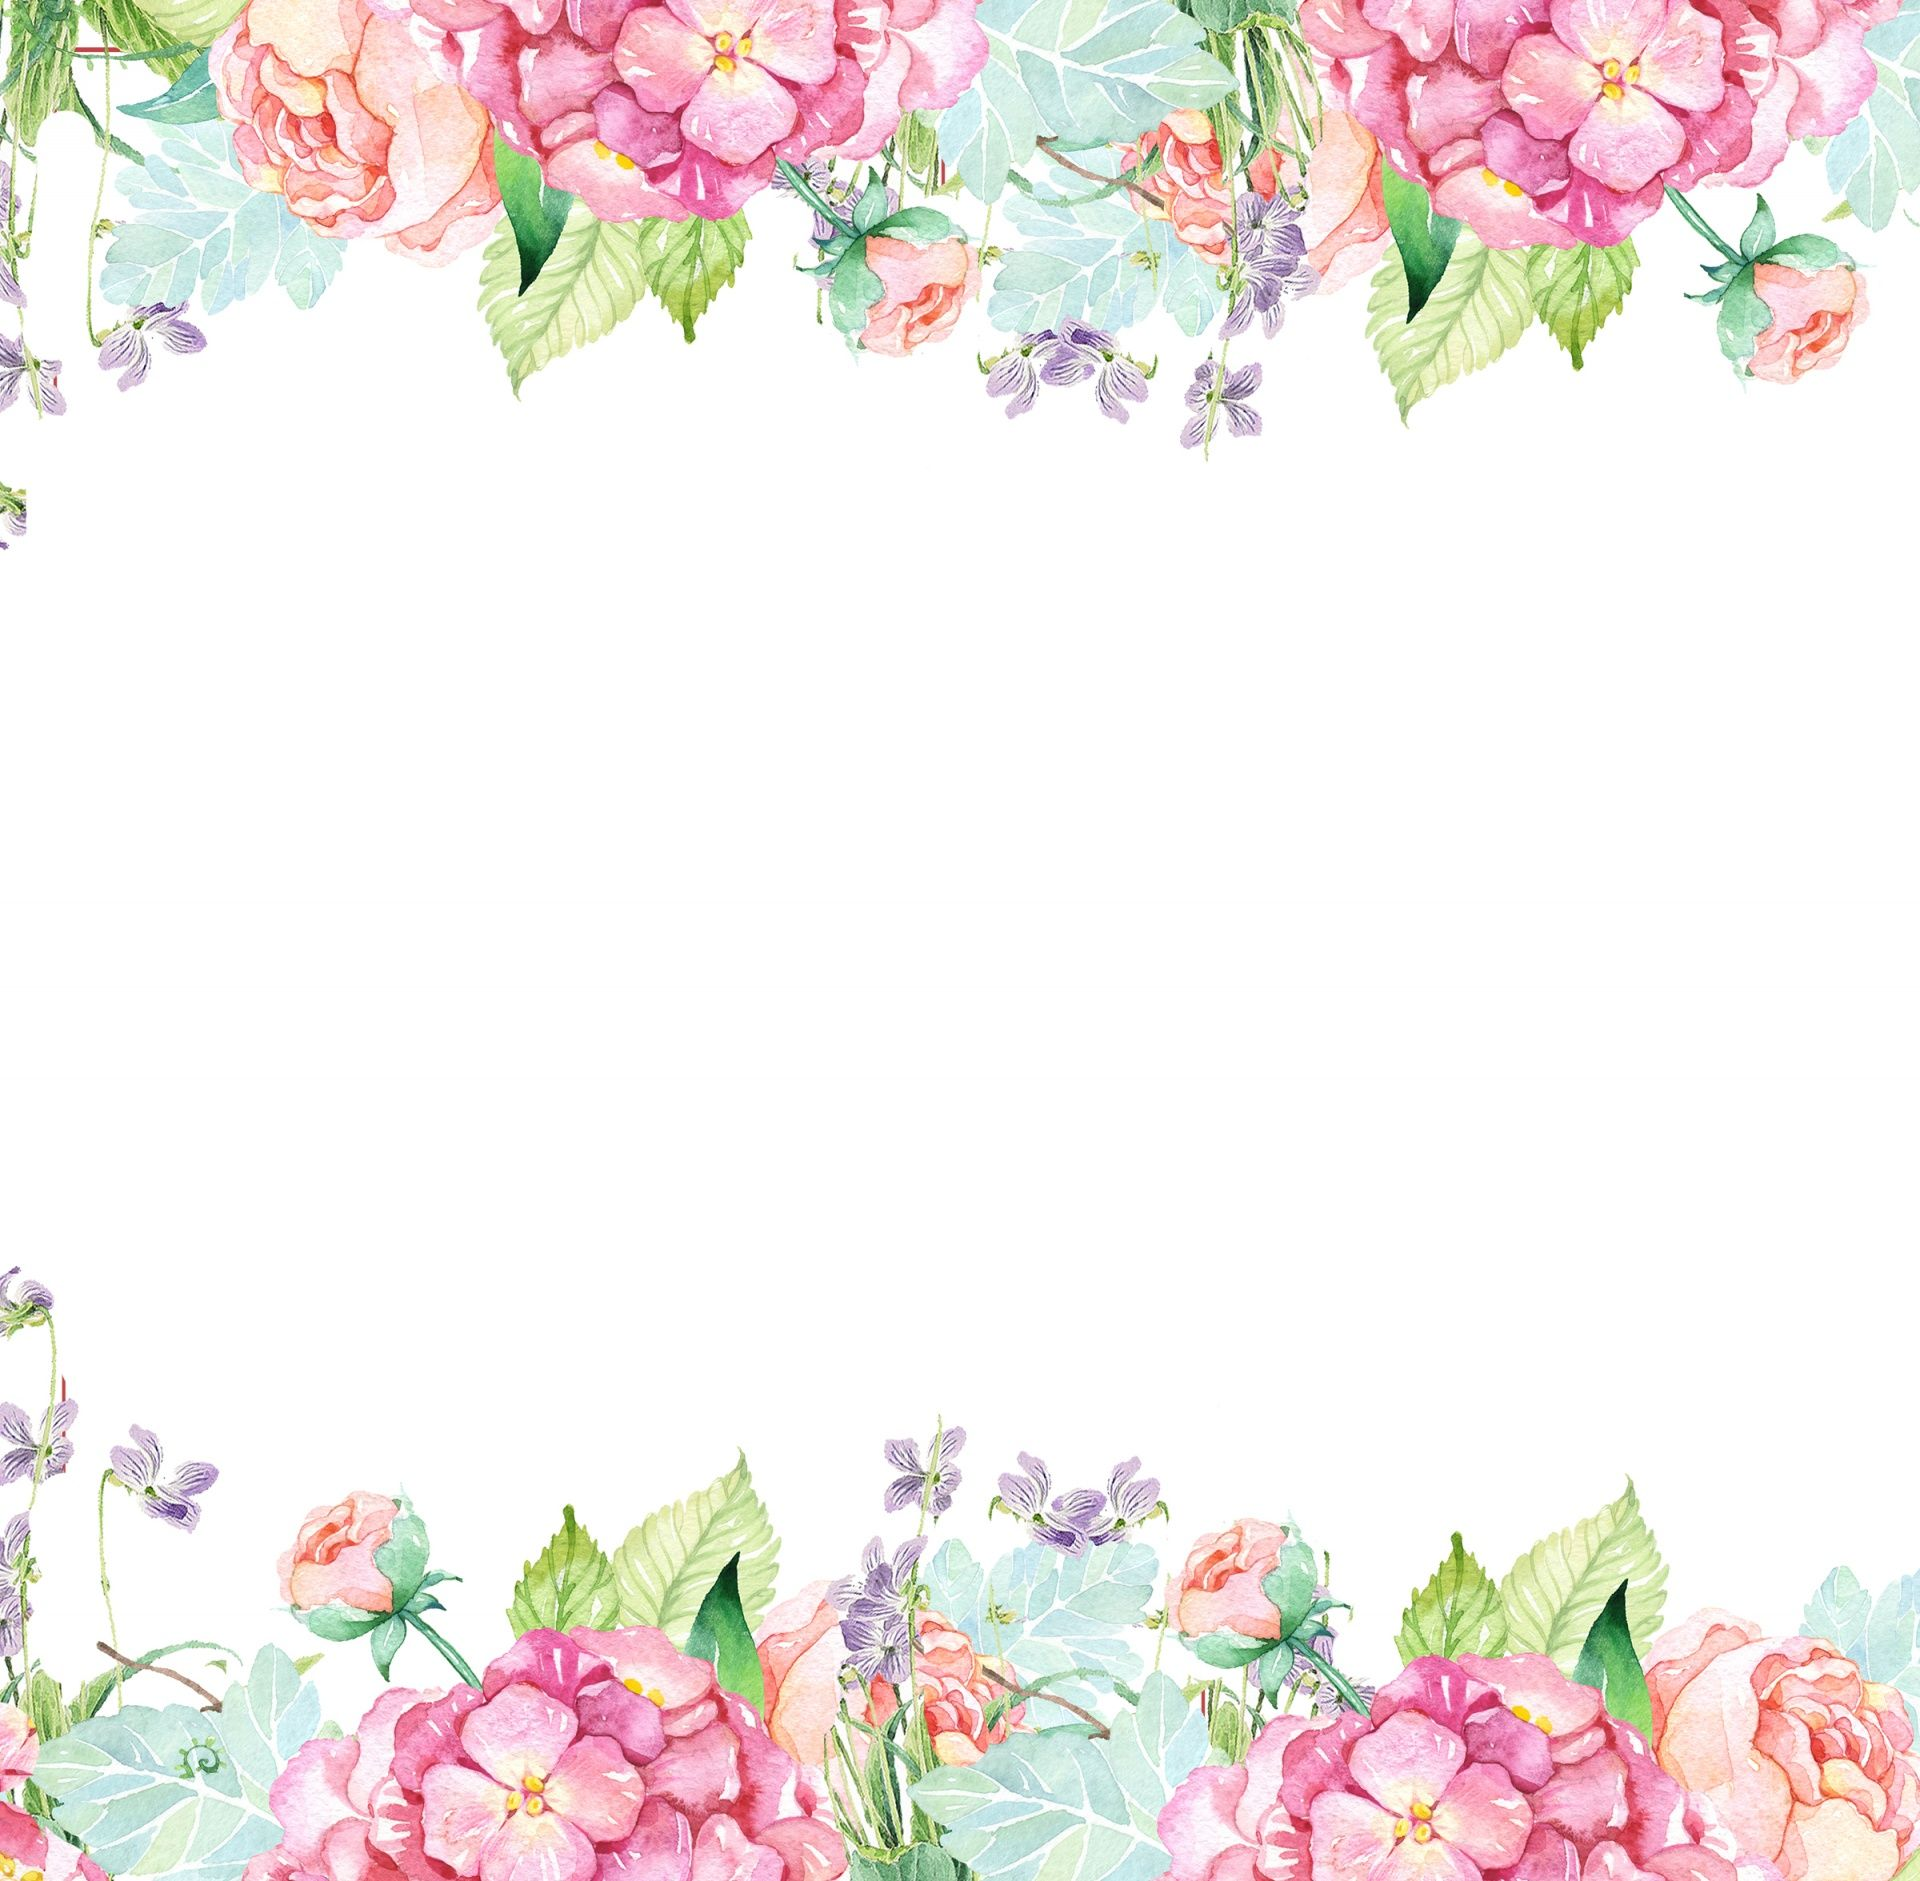 Floral Watercolor Flowers Border Free Stock Photo Free